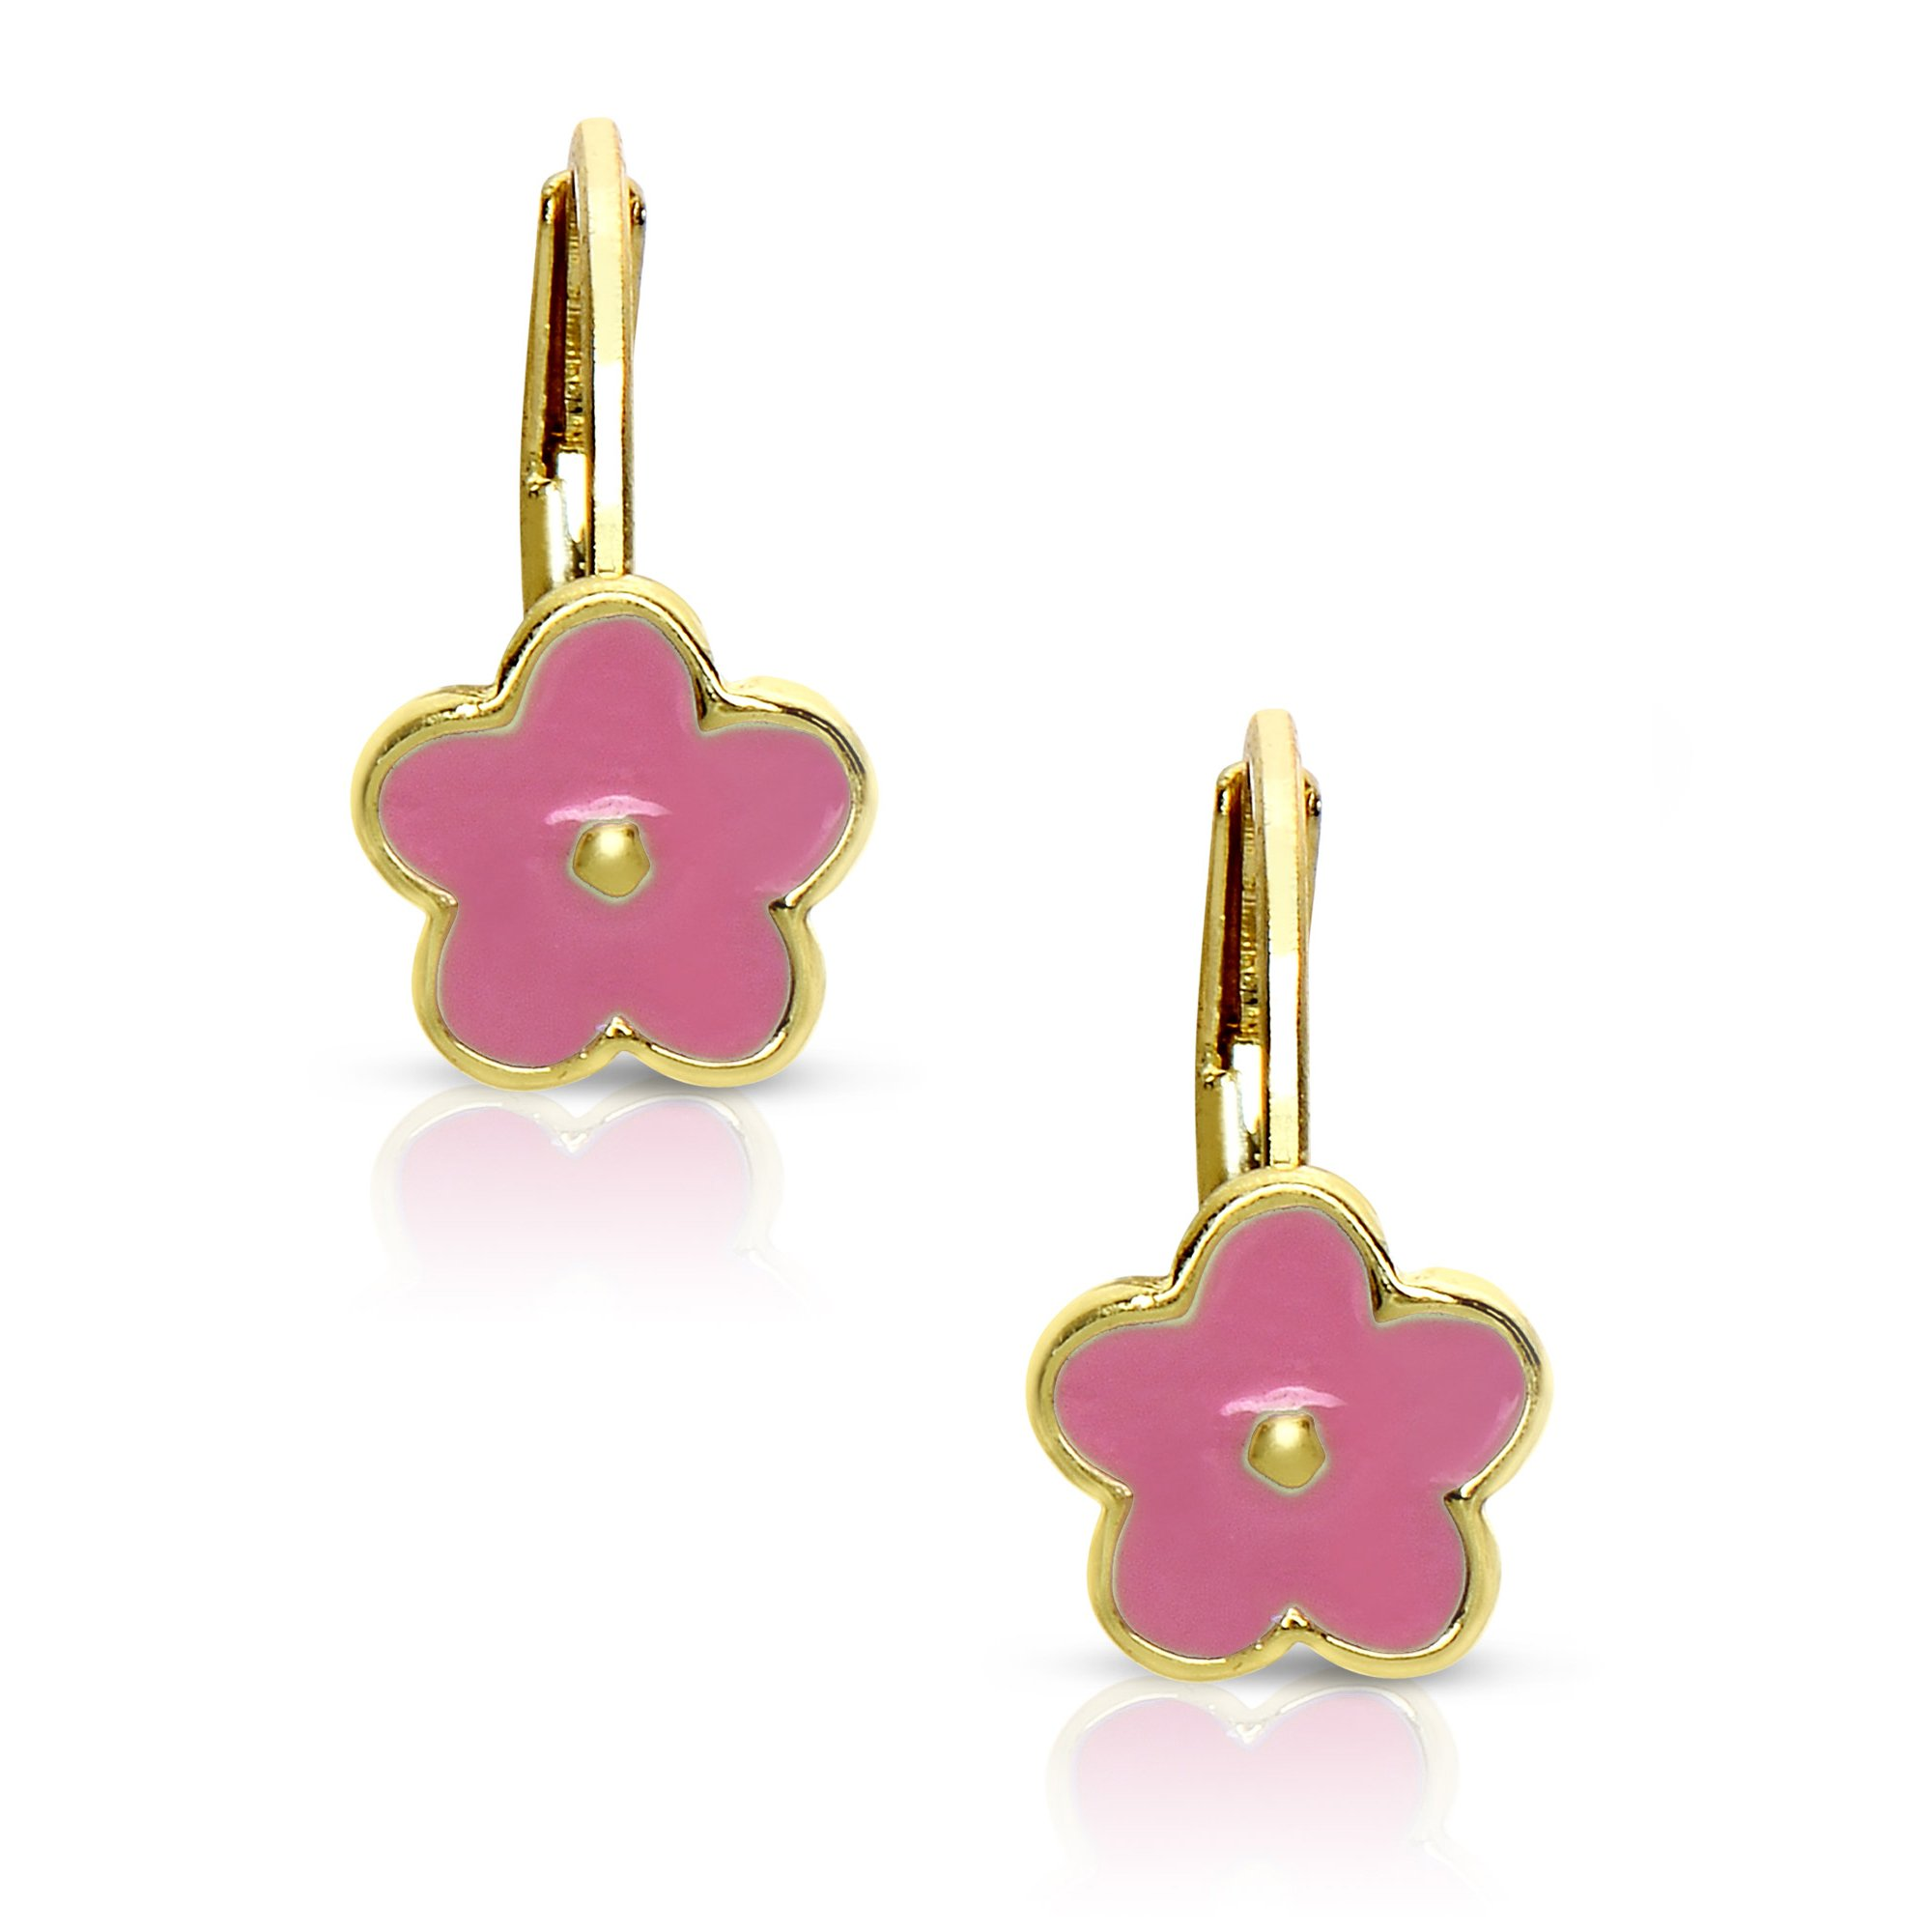 Lily Nily Pink Flower Lever Back Earrings